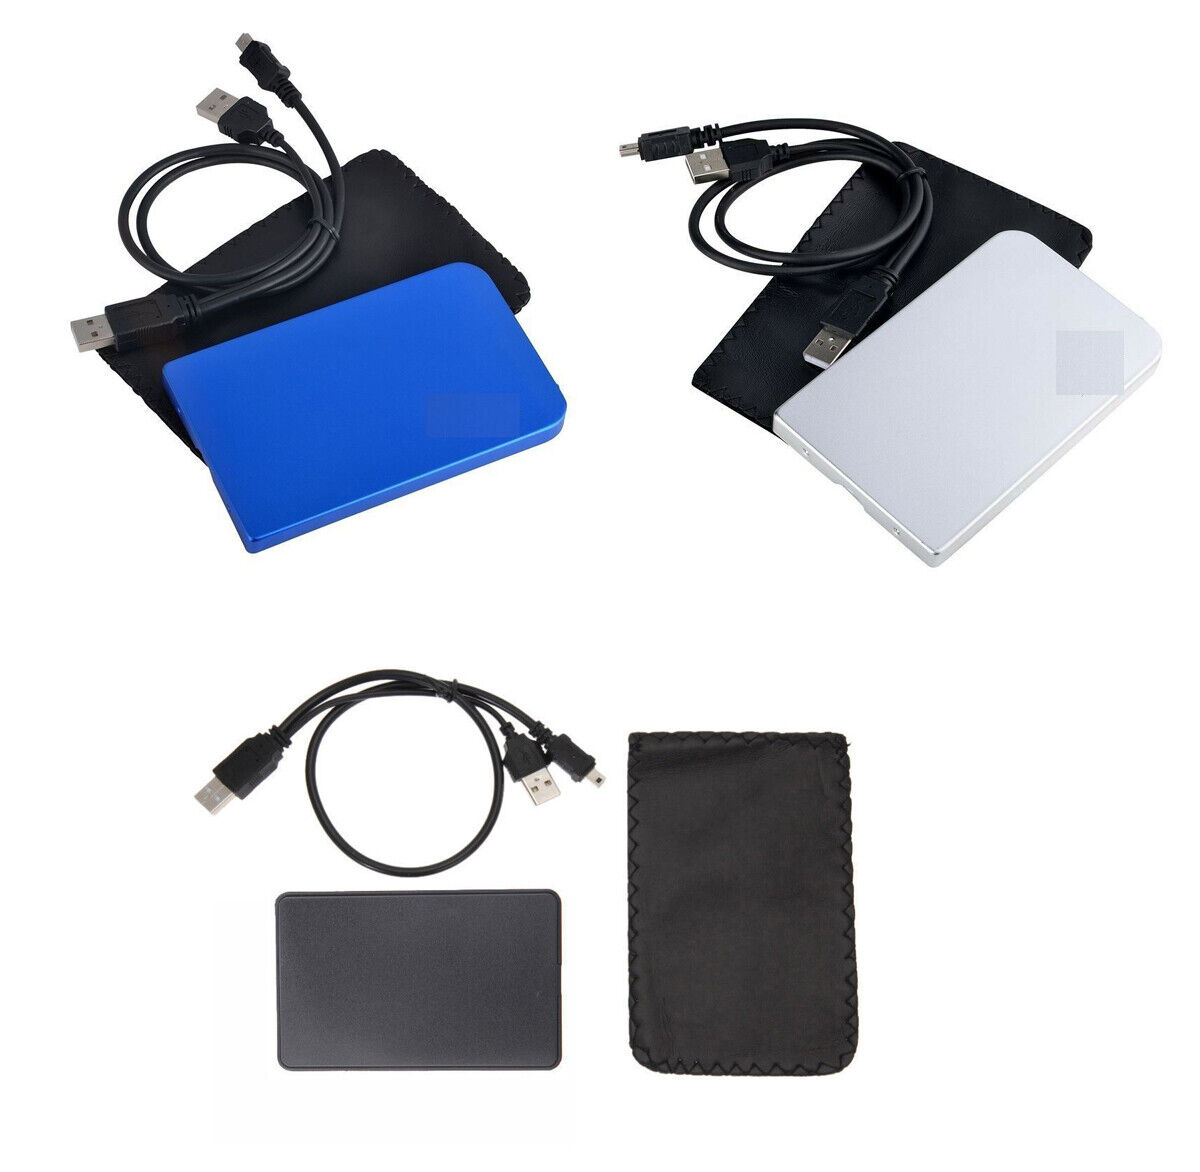 CableVantage 2.5″ Inch Sata USB 2.0 Hard Drive HDD Enclosure Black Blue Silver Computers/Tablets & Networking